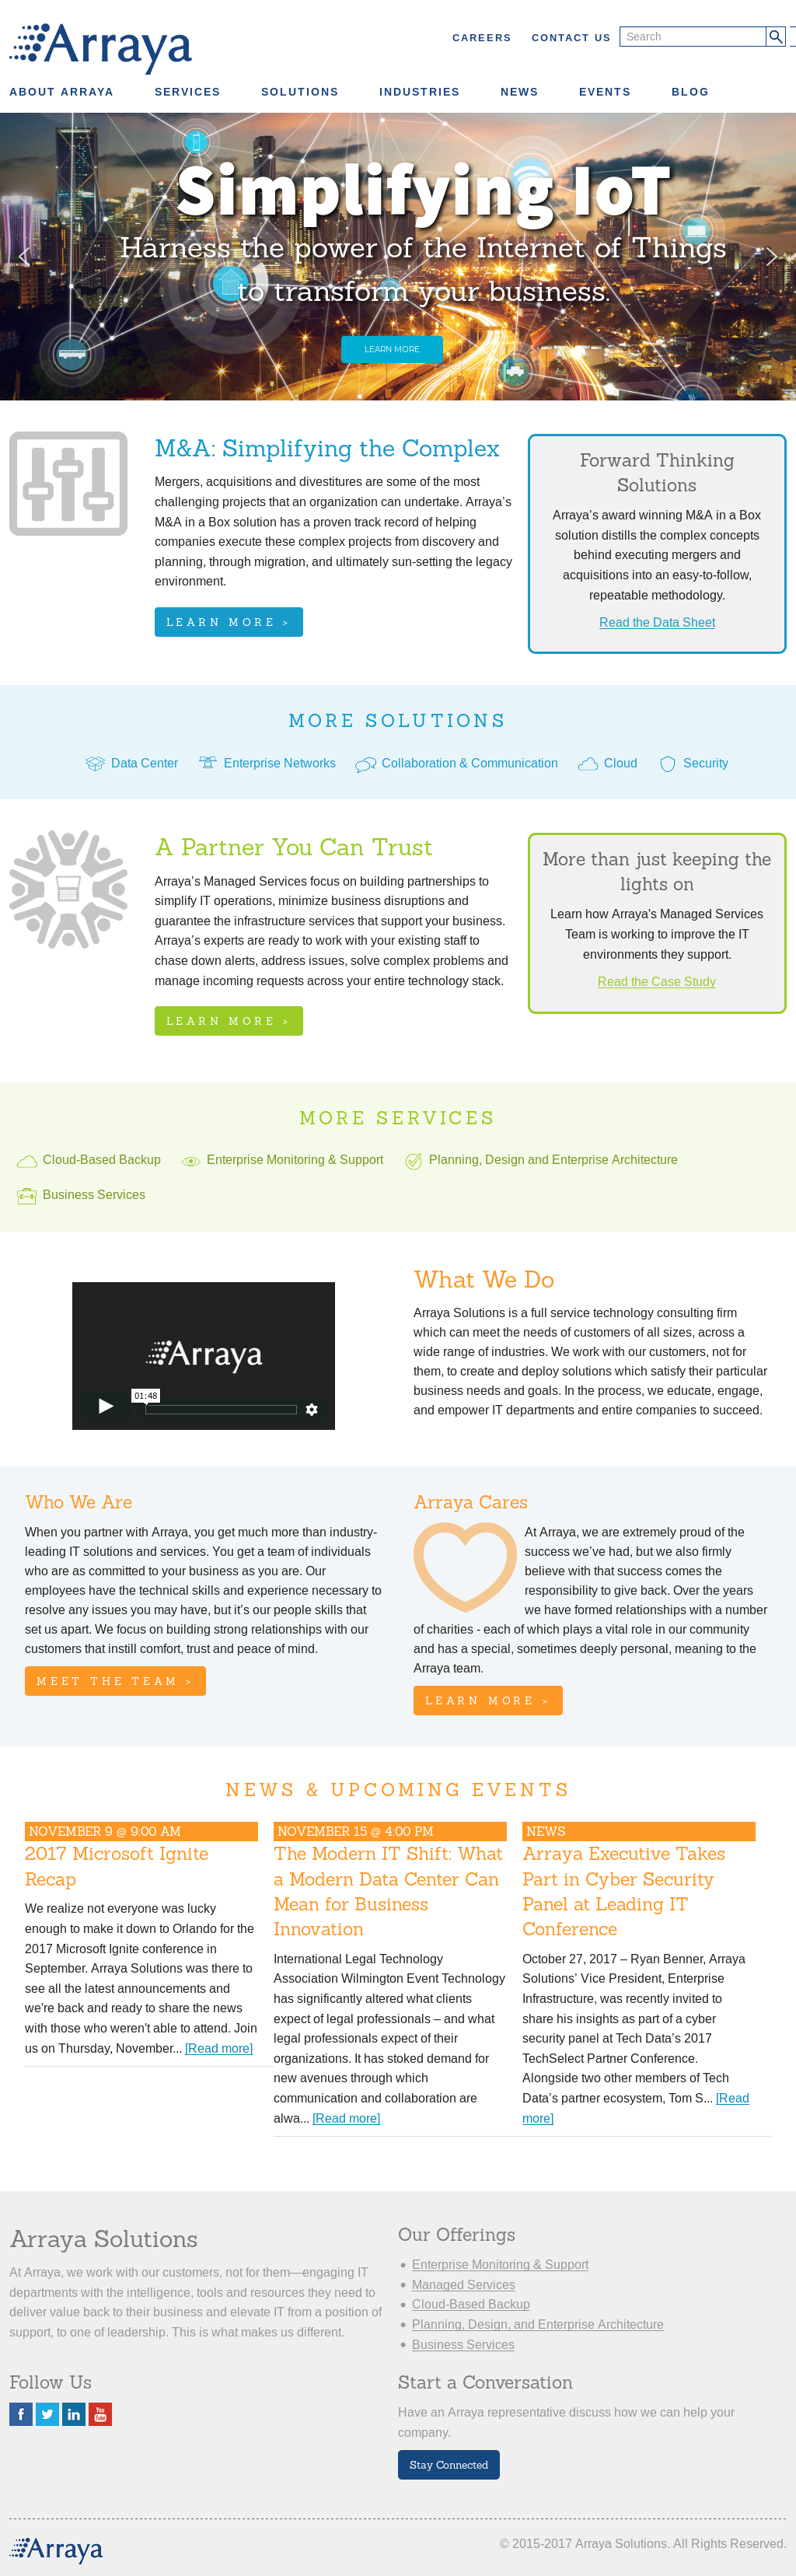 Arraya Competitors, Revenue and Employees - Owler Company